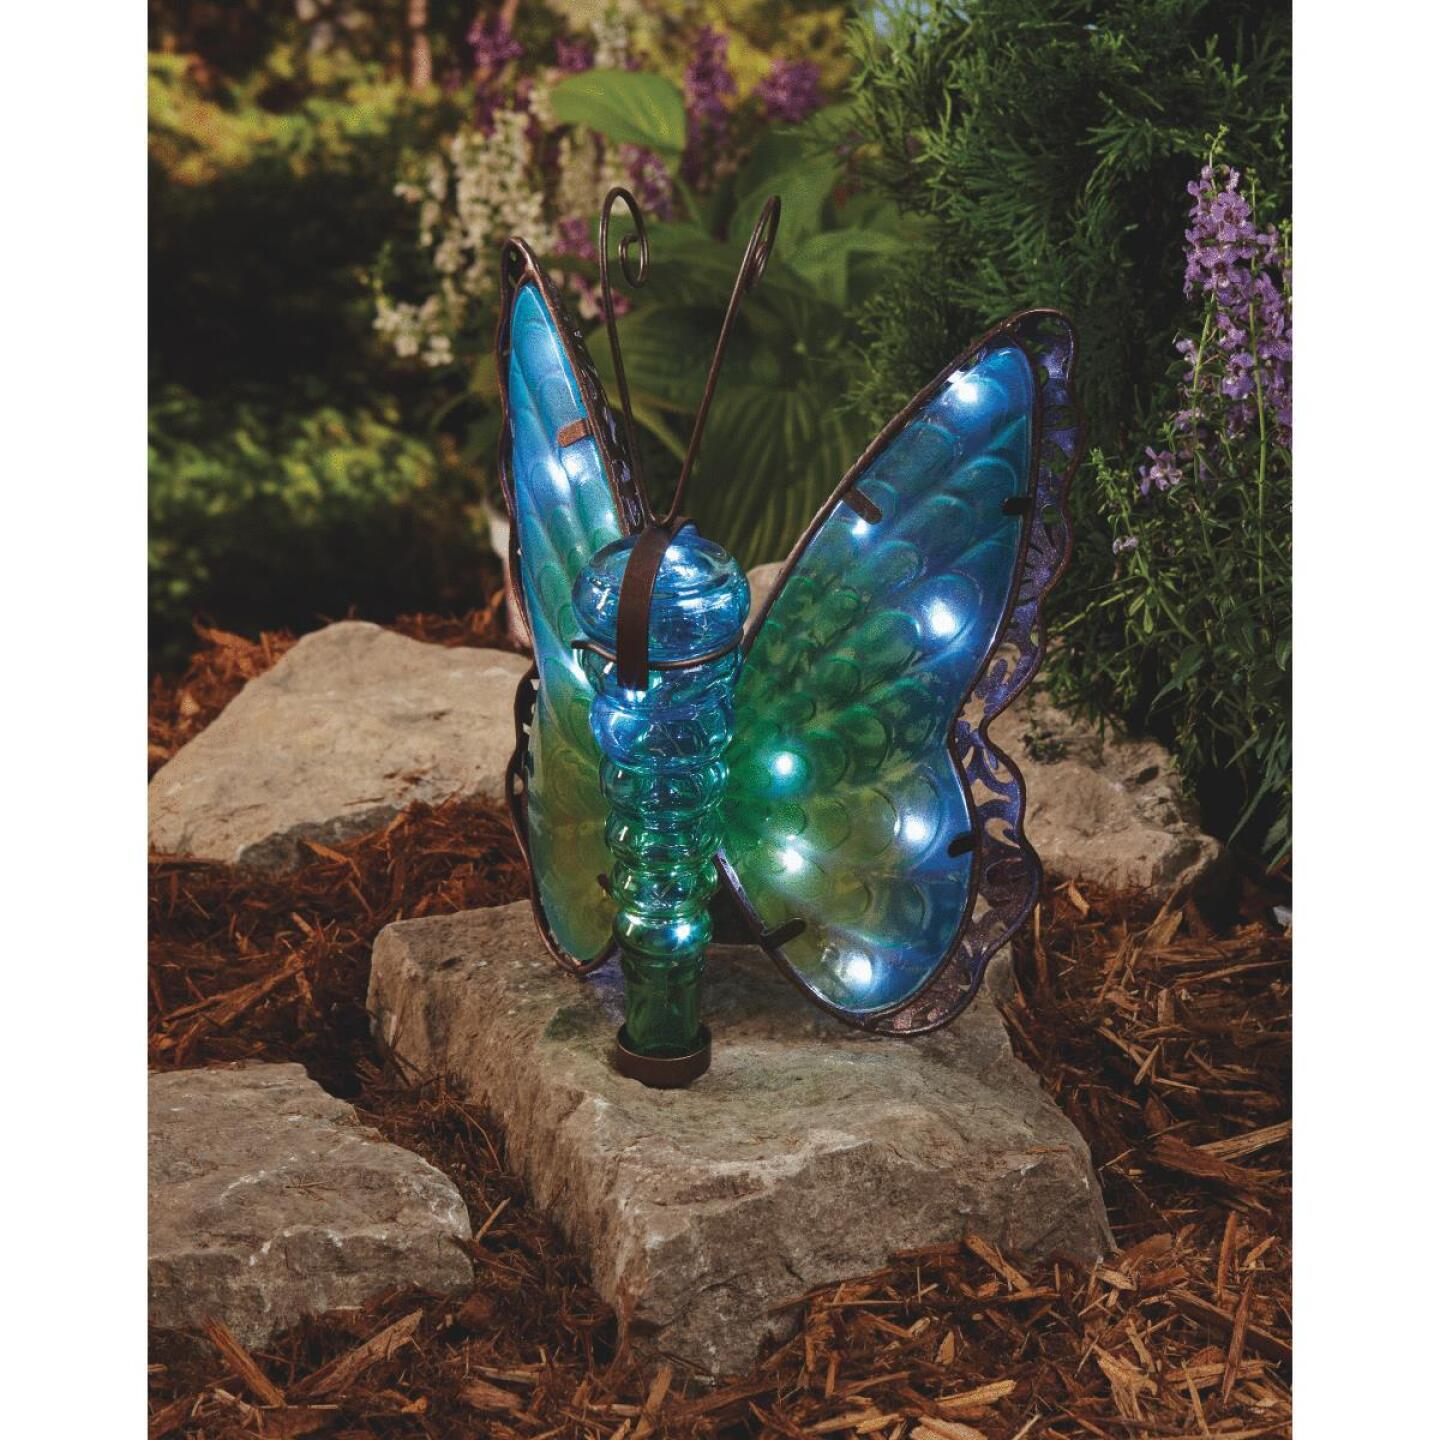 Outdoor Expressions 11.25 In. H. x 8 In. Dia. Butterfly Solar Light Image 5